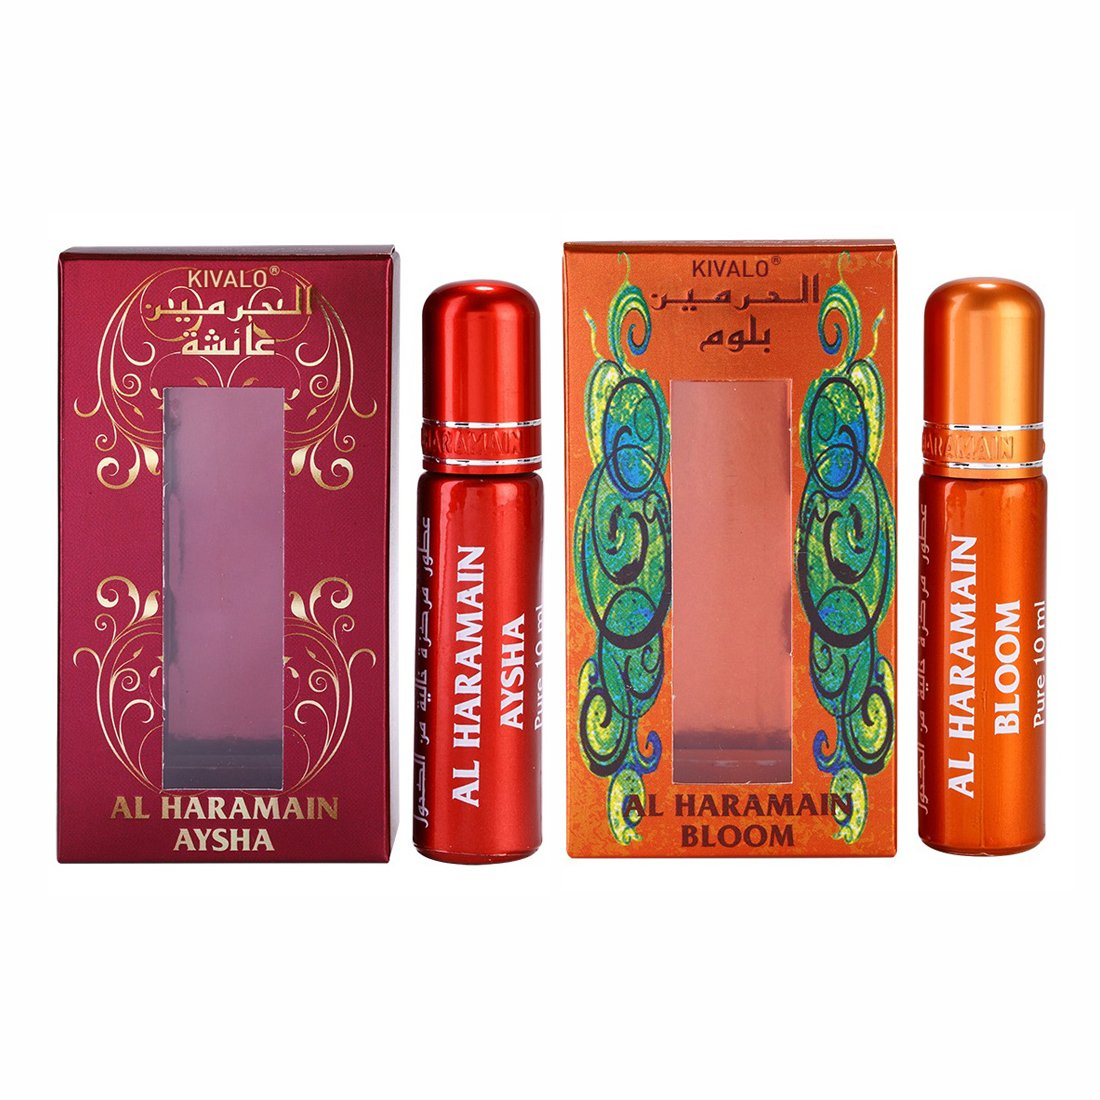 Al Haramain Aysha & Bloom Roll On Attar Pack of 2 x 10ml